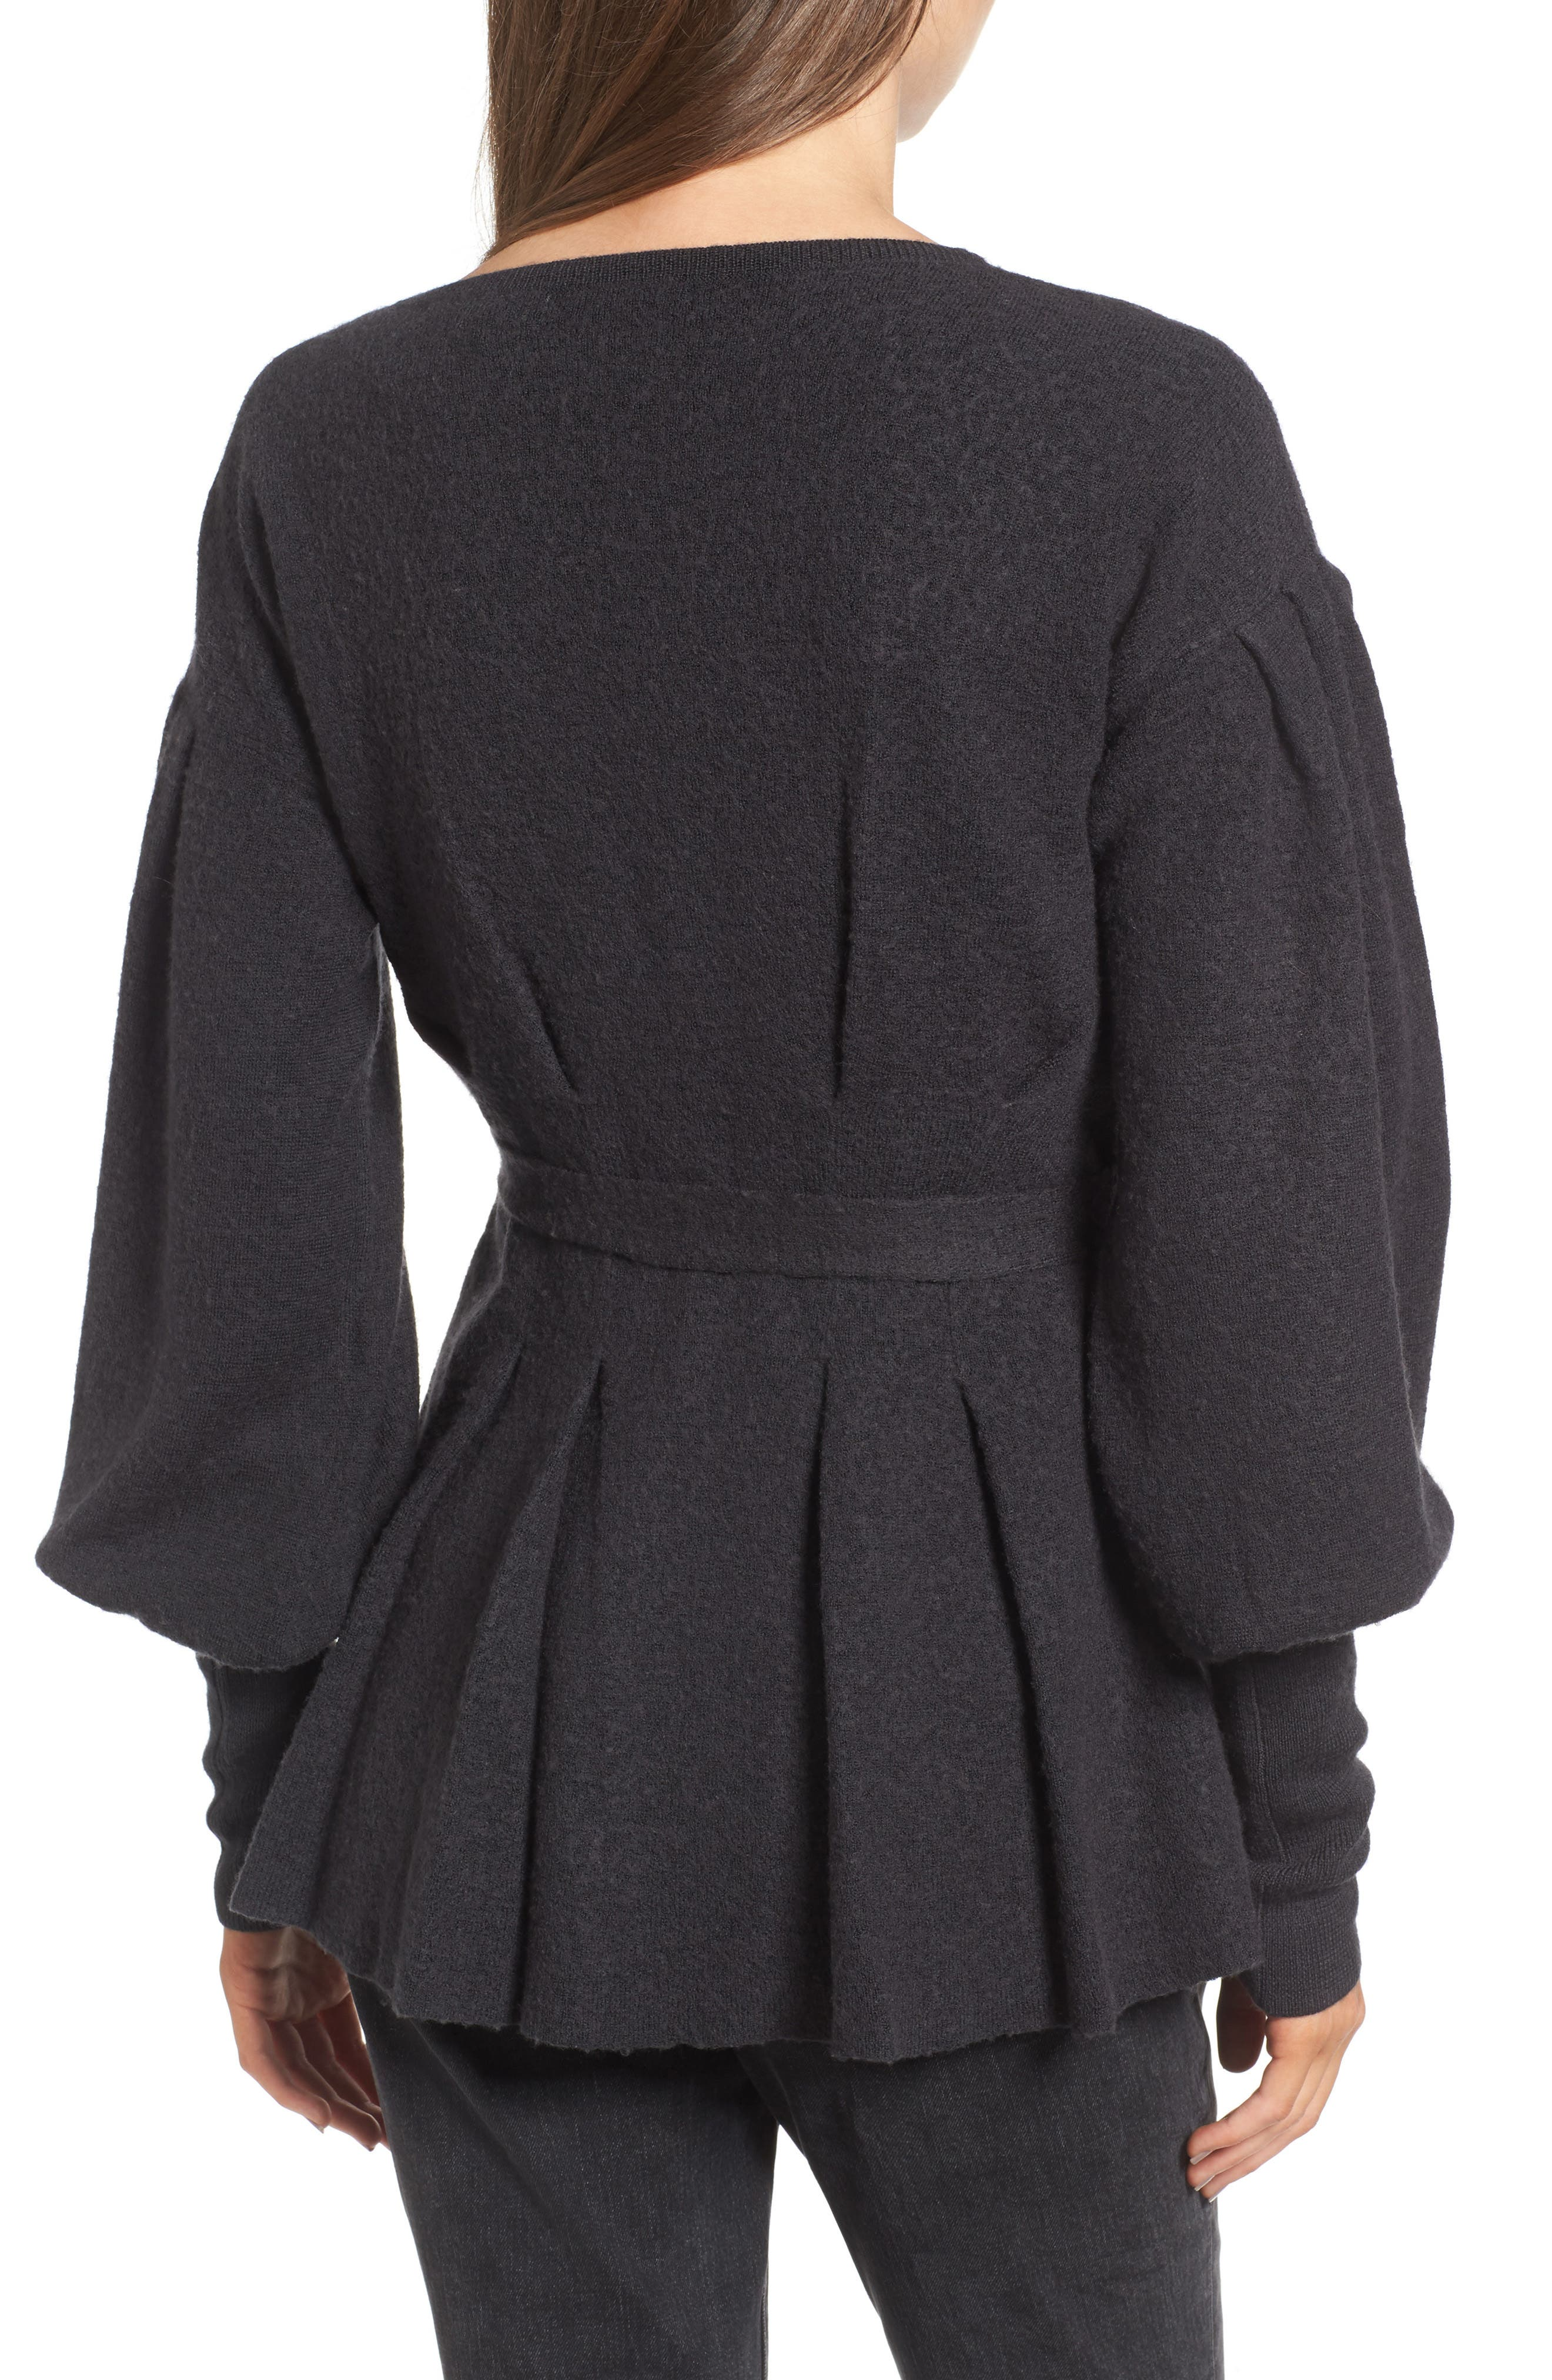 x Something Navy Wrap Cardigan,                             Alternate thumbnail 3, color,                             Grey Dark Charcoal Heather